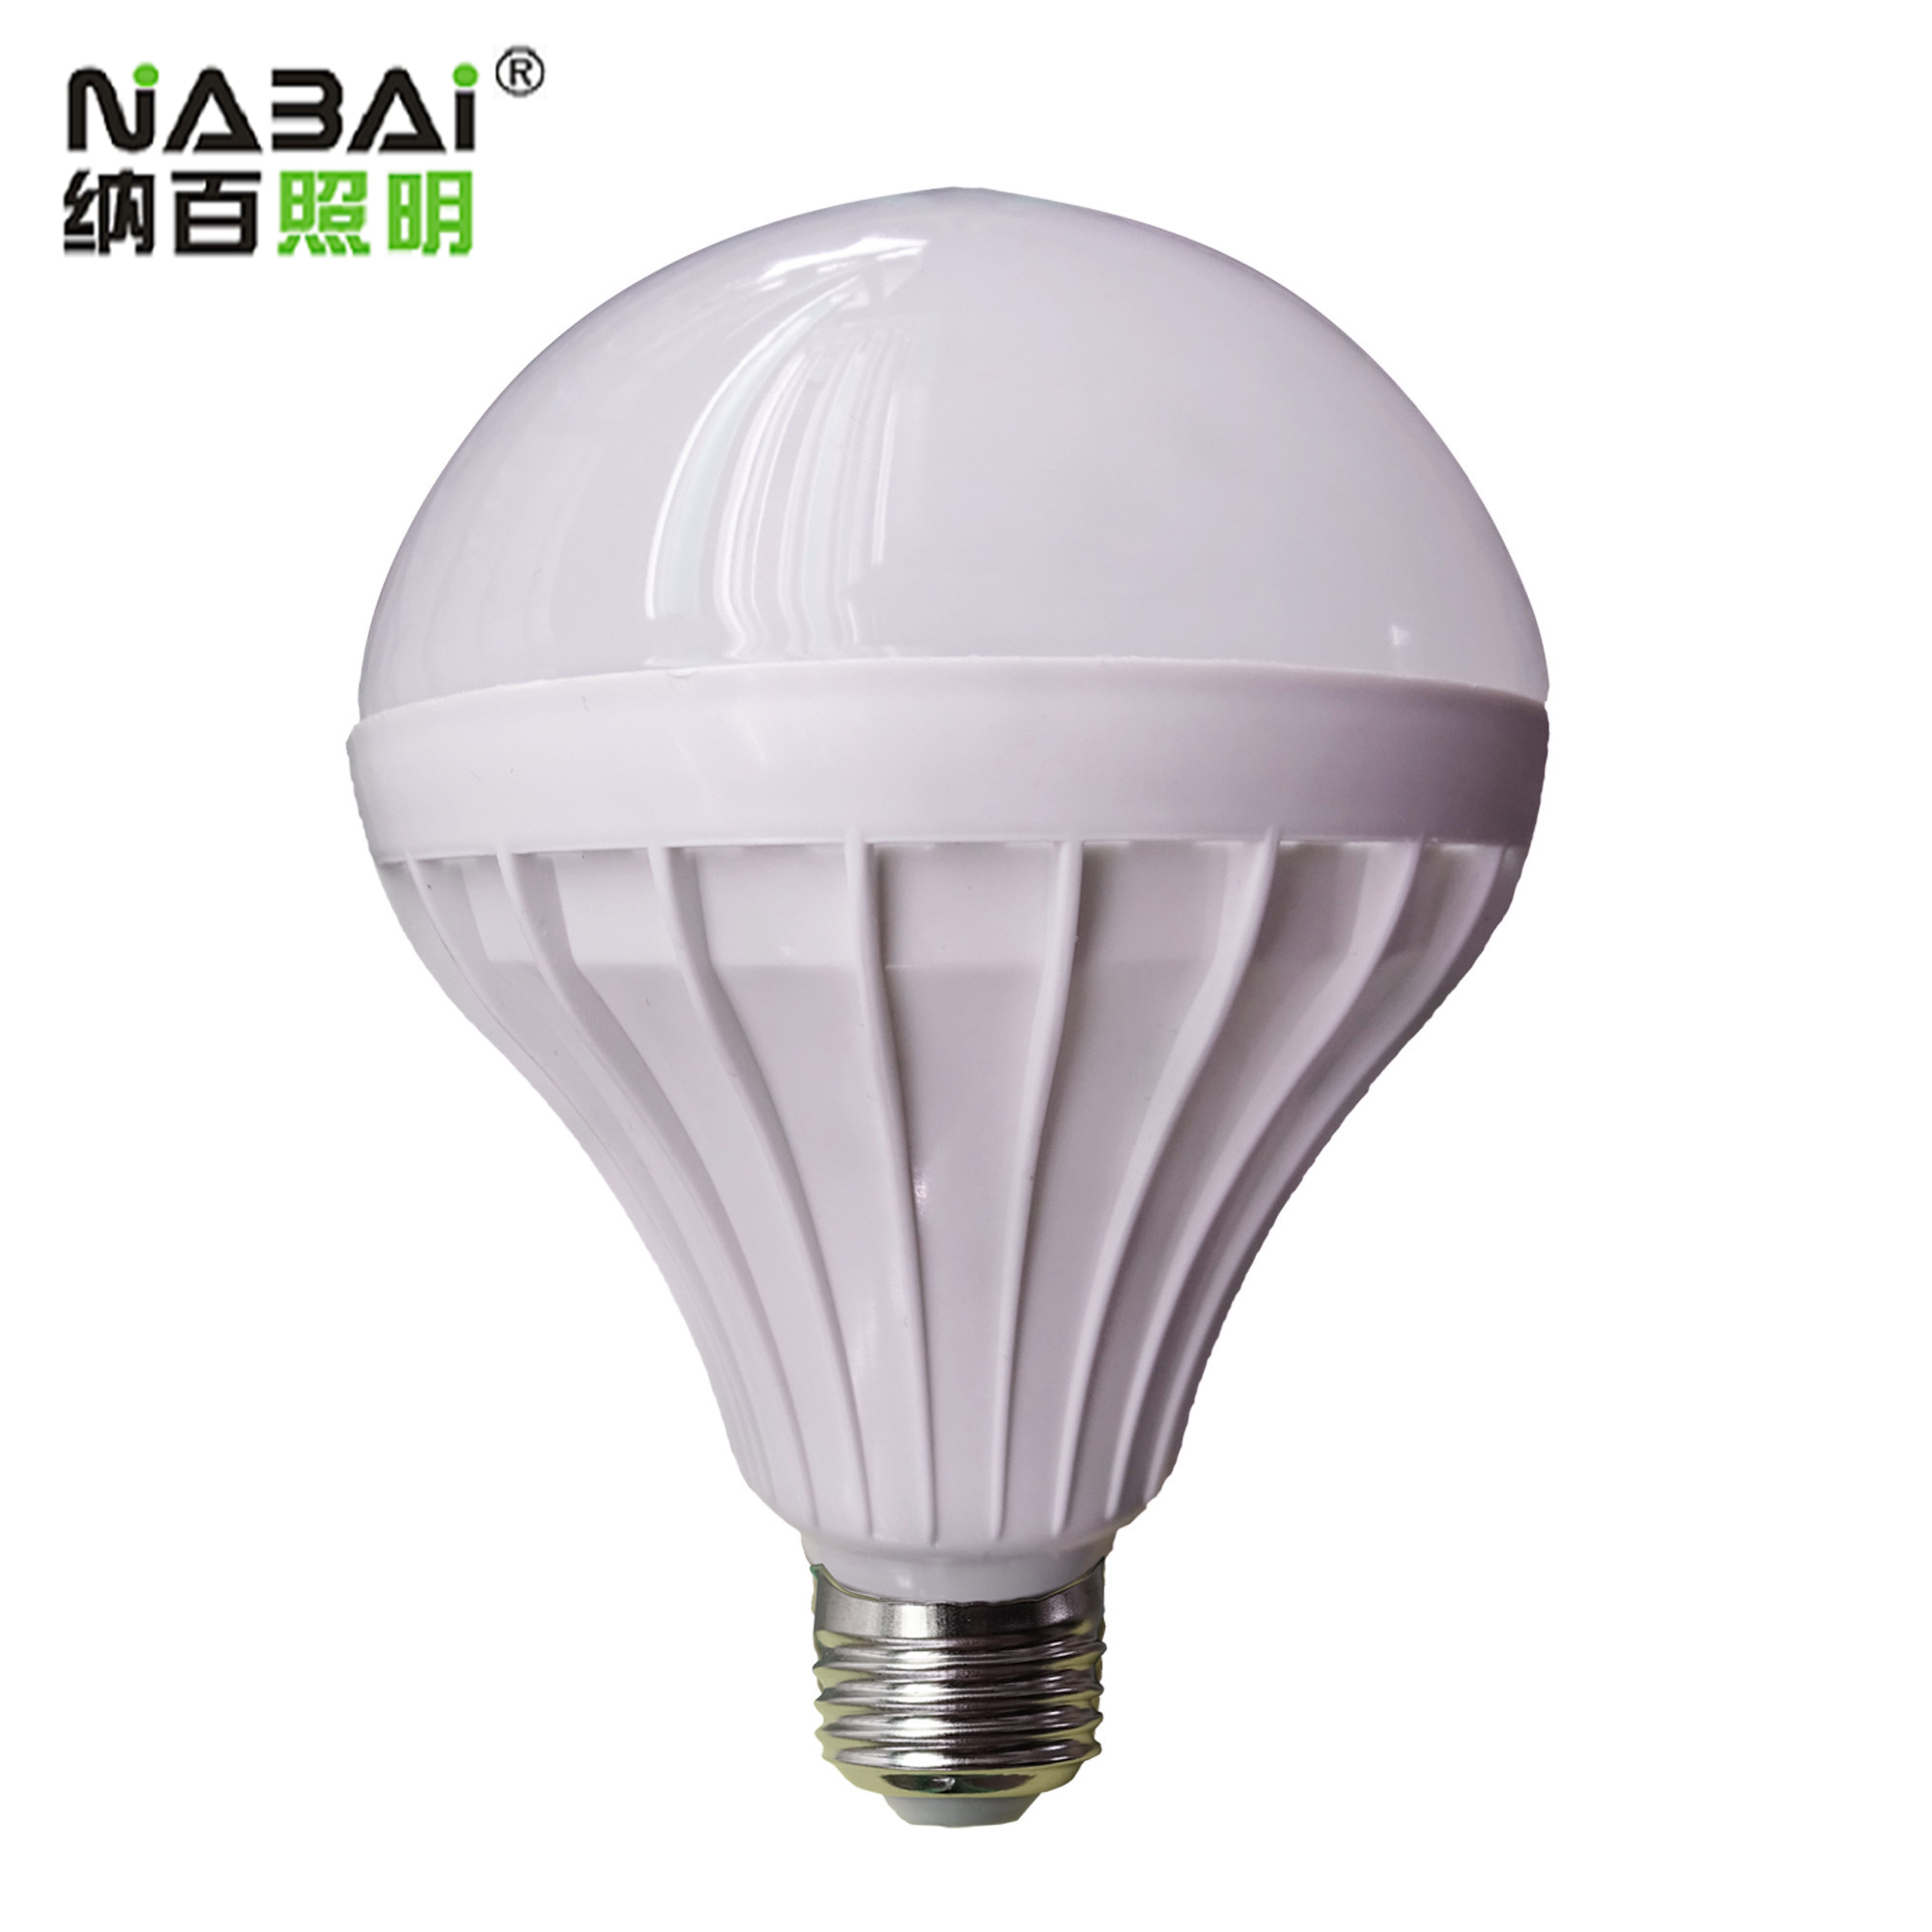 Cheap price online hot sale LED light bubs e27 b22 base 5W SMD2835 led <strong>bulbs</strong>